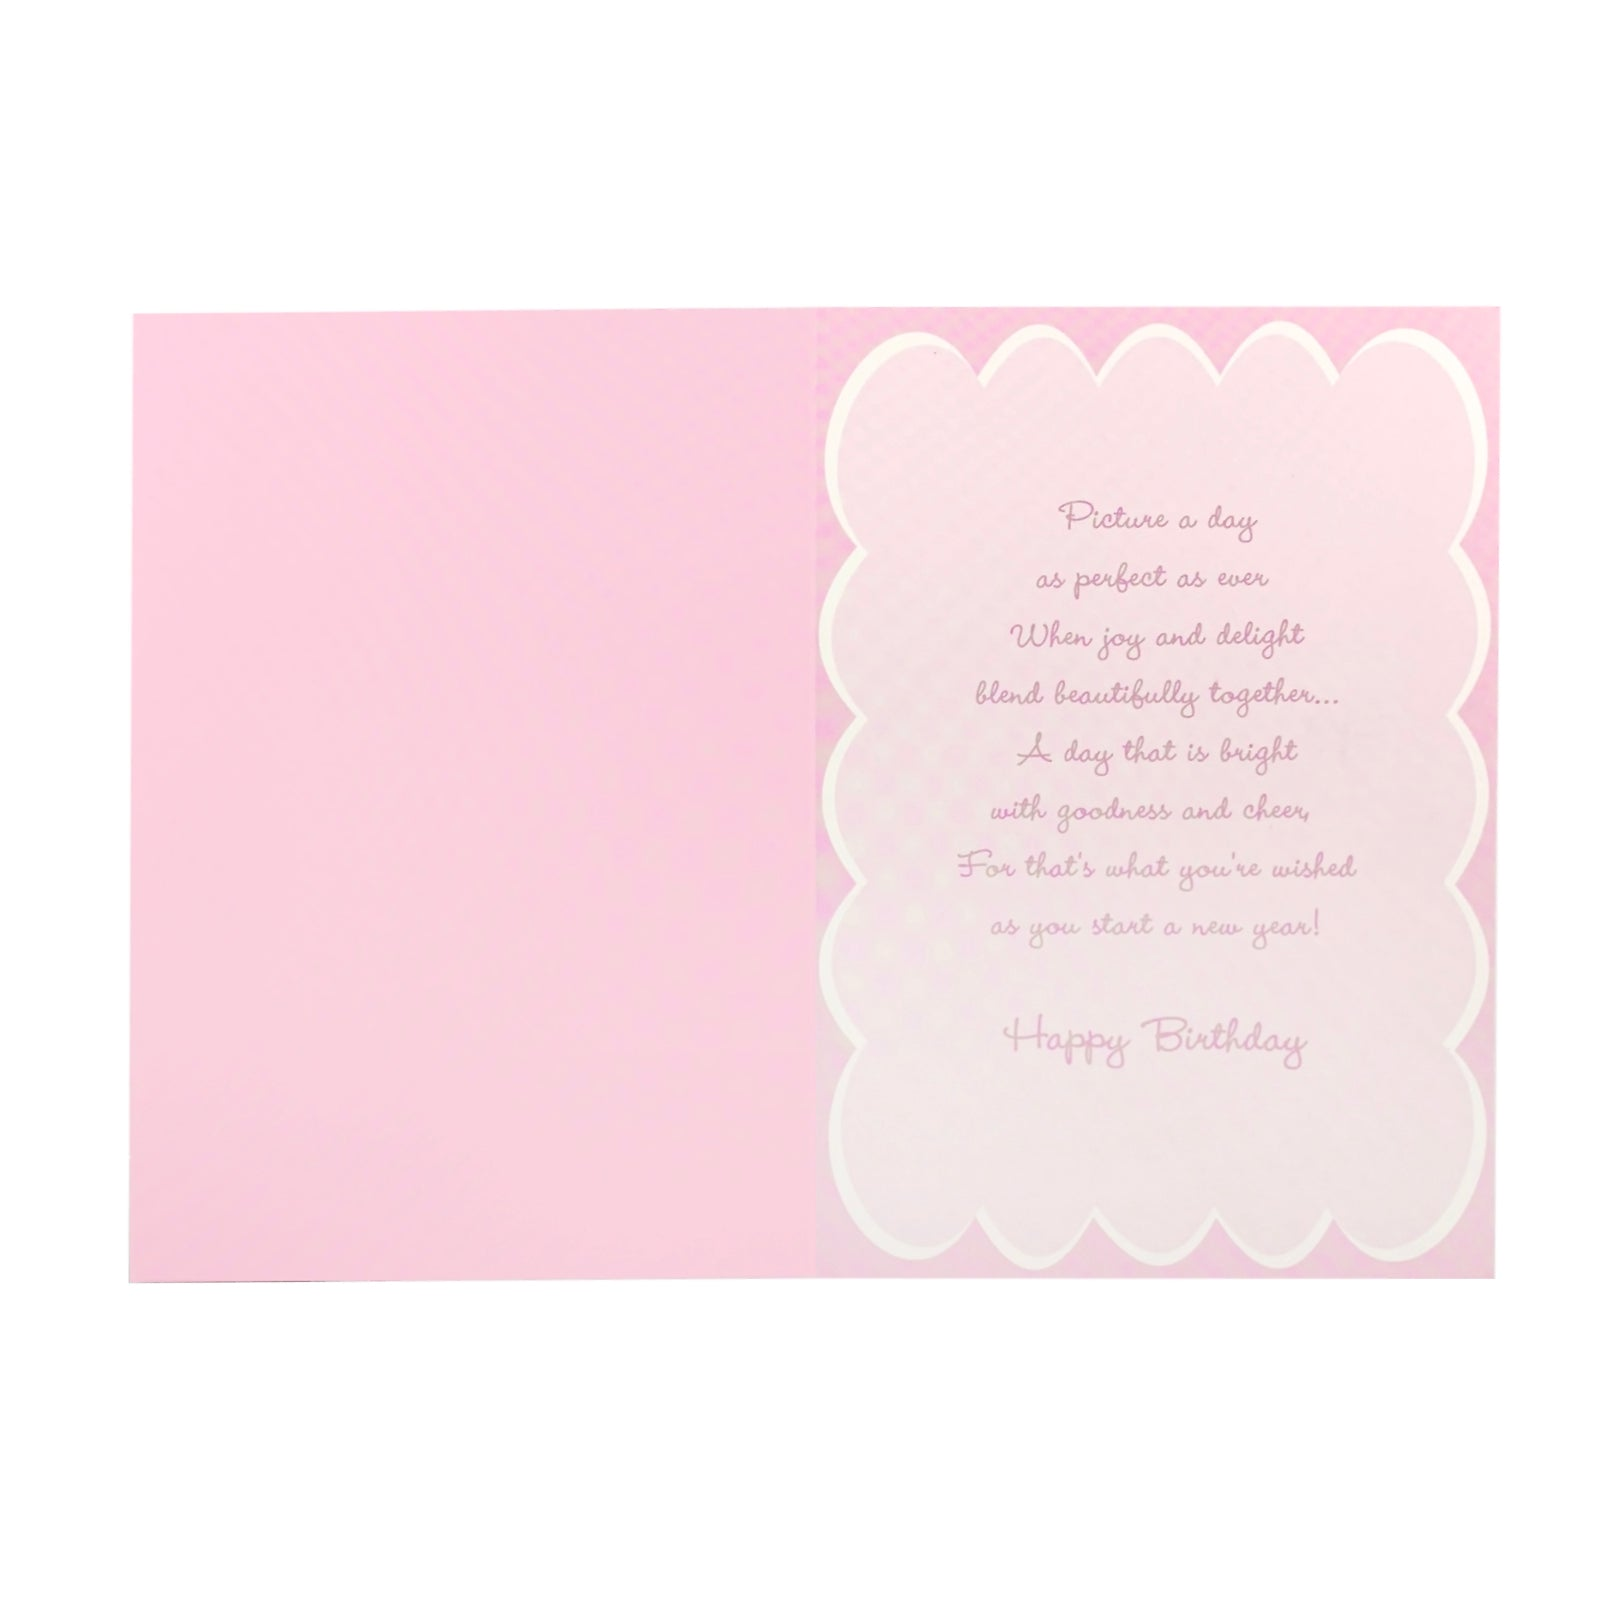 Designer Greetings Birthday Card - Wonderful Birthday Pink